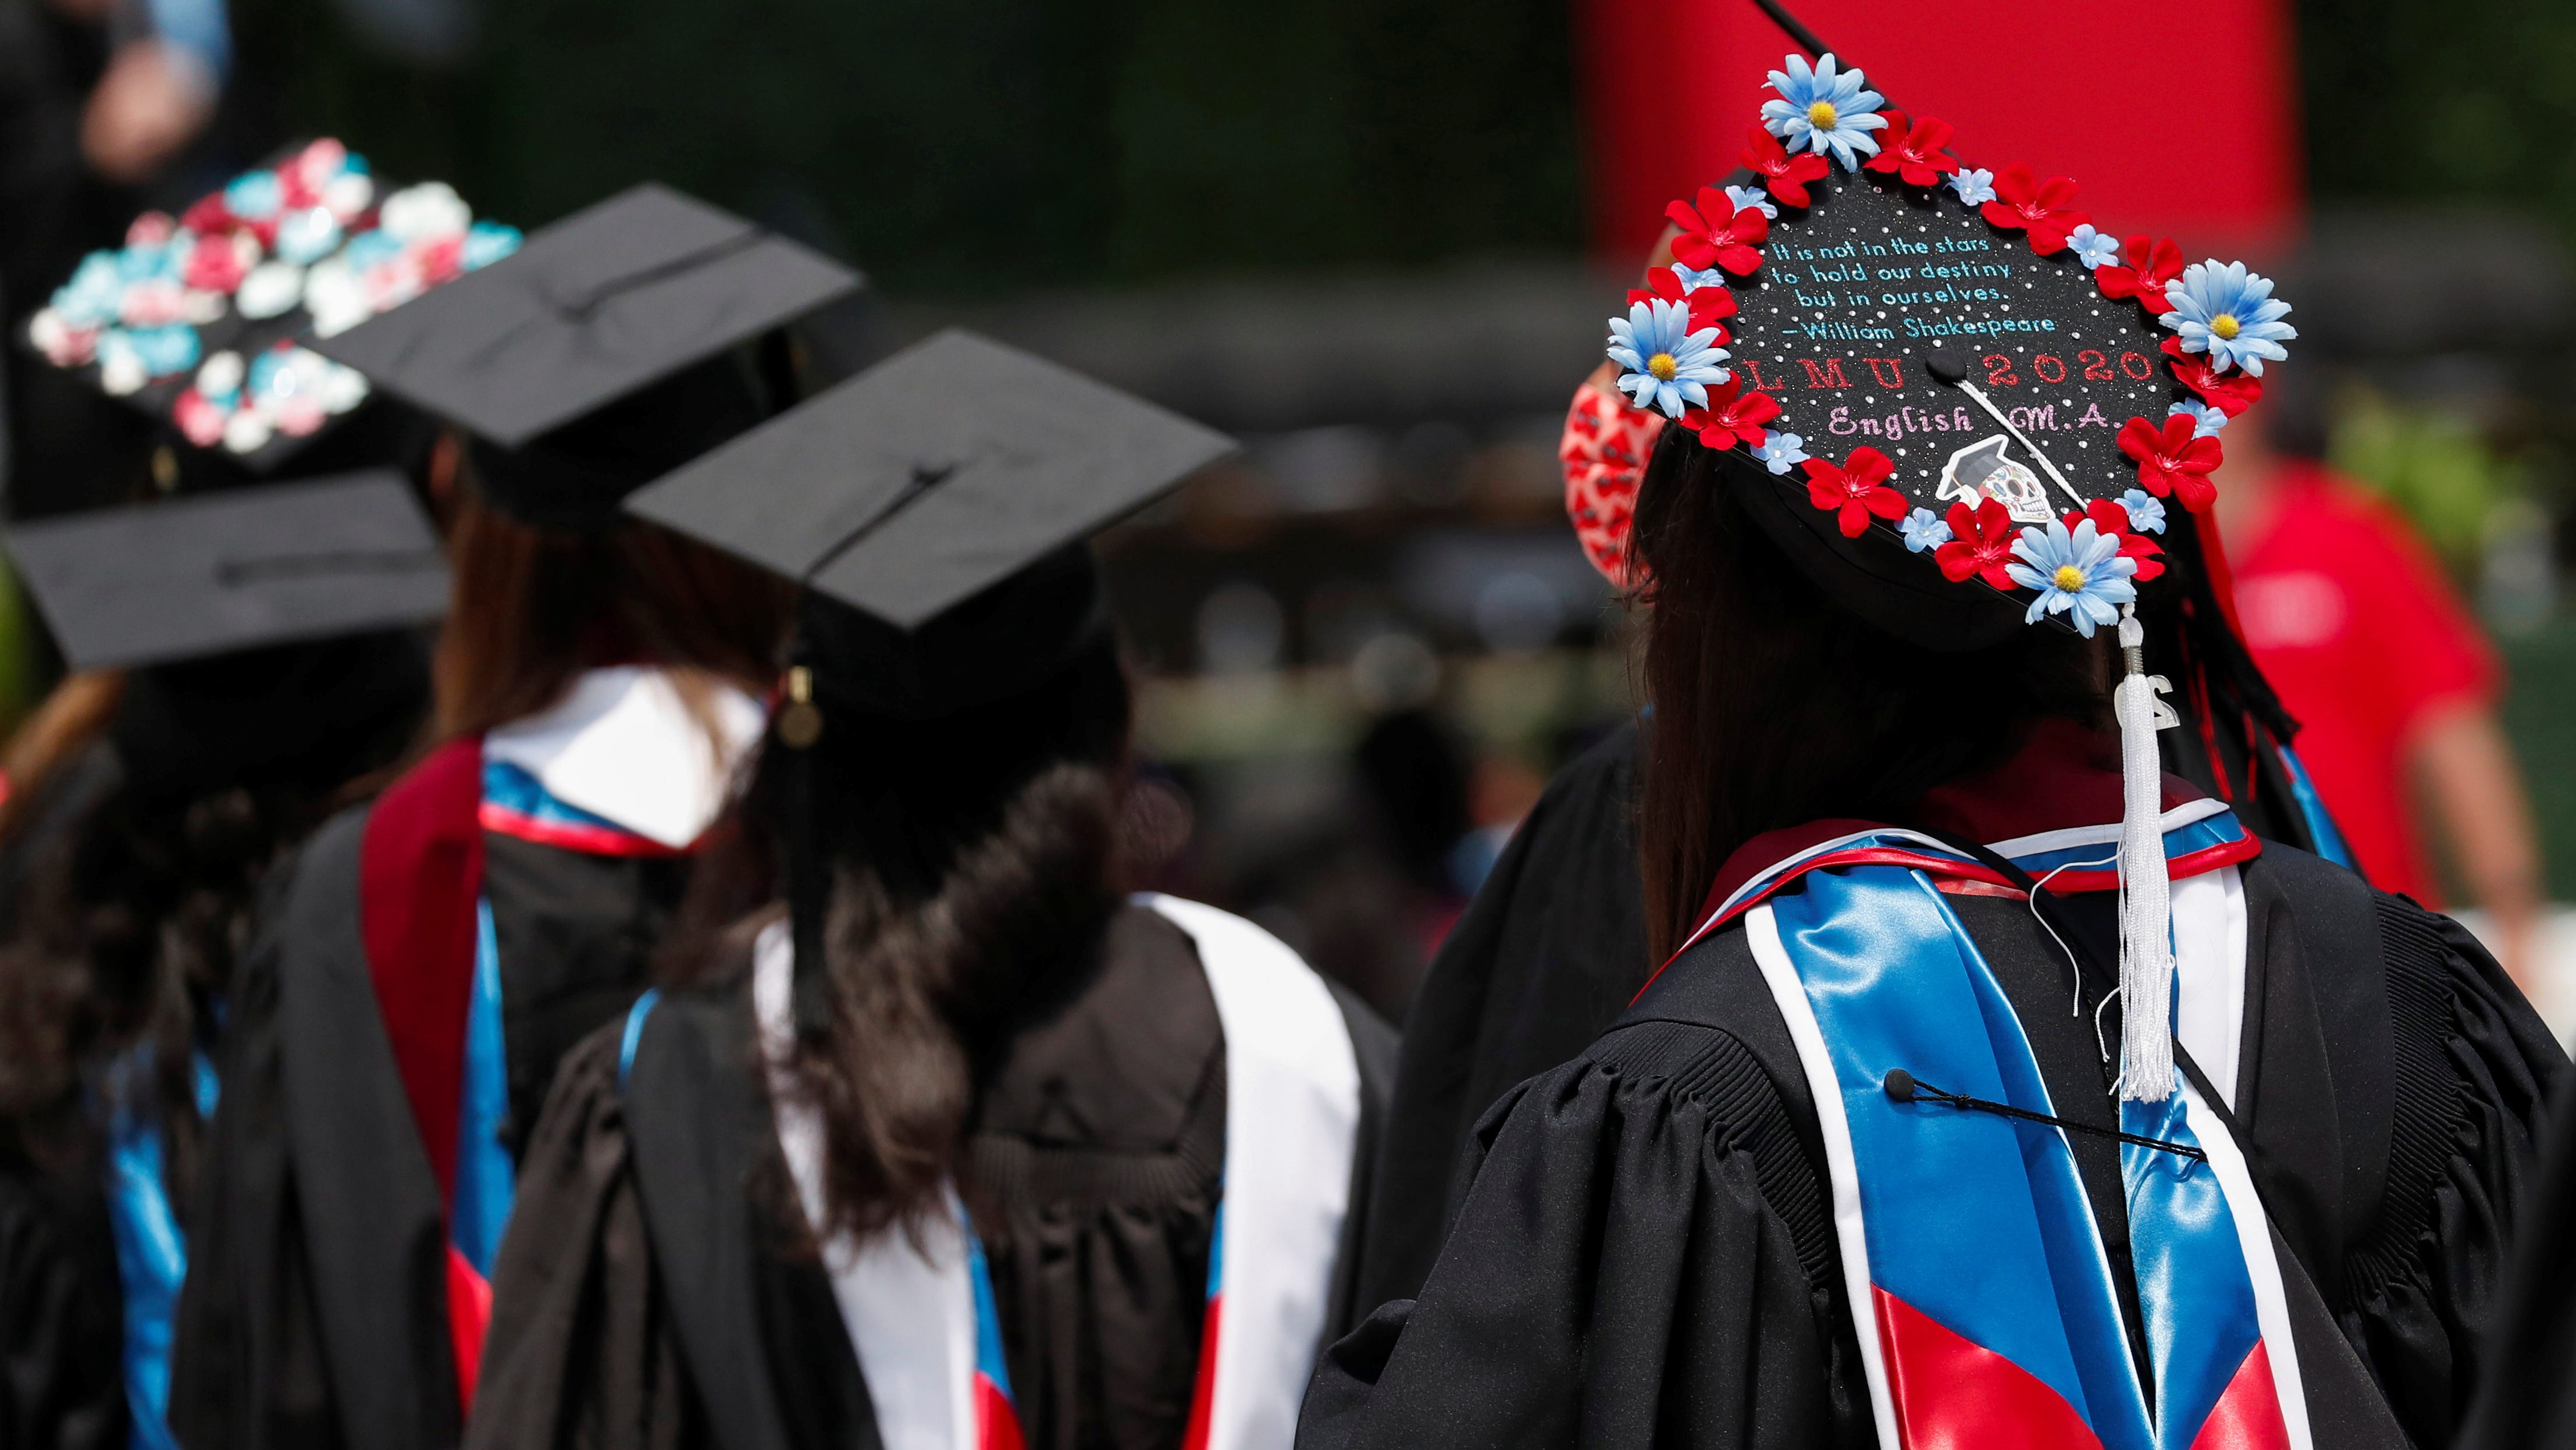 Graduates parade during Loyola Marymount University's 109th commencement for graduating classes of 2020 and 2021 at SoFi Stadium in Inglewood, California, U.S., July 31, 2021.